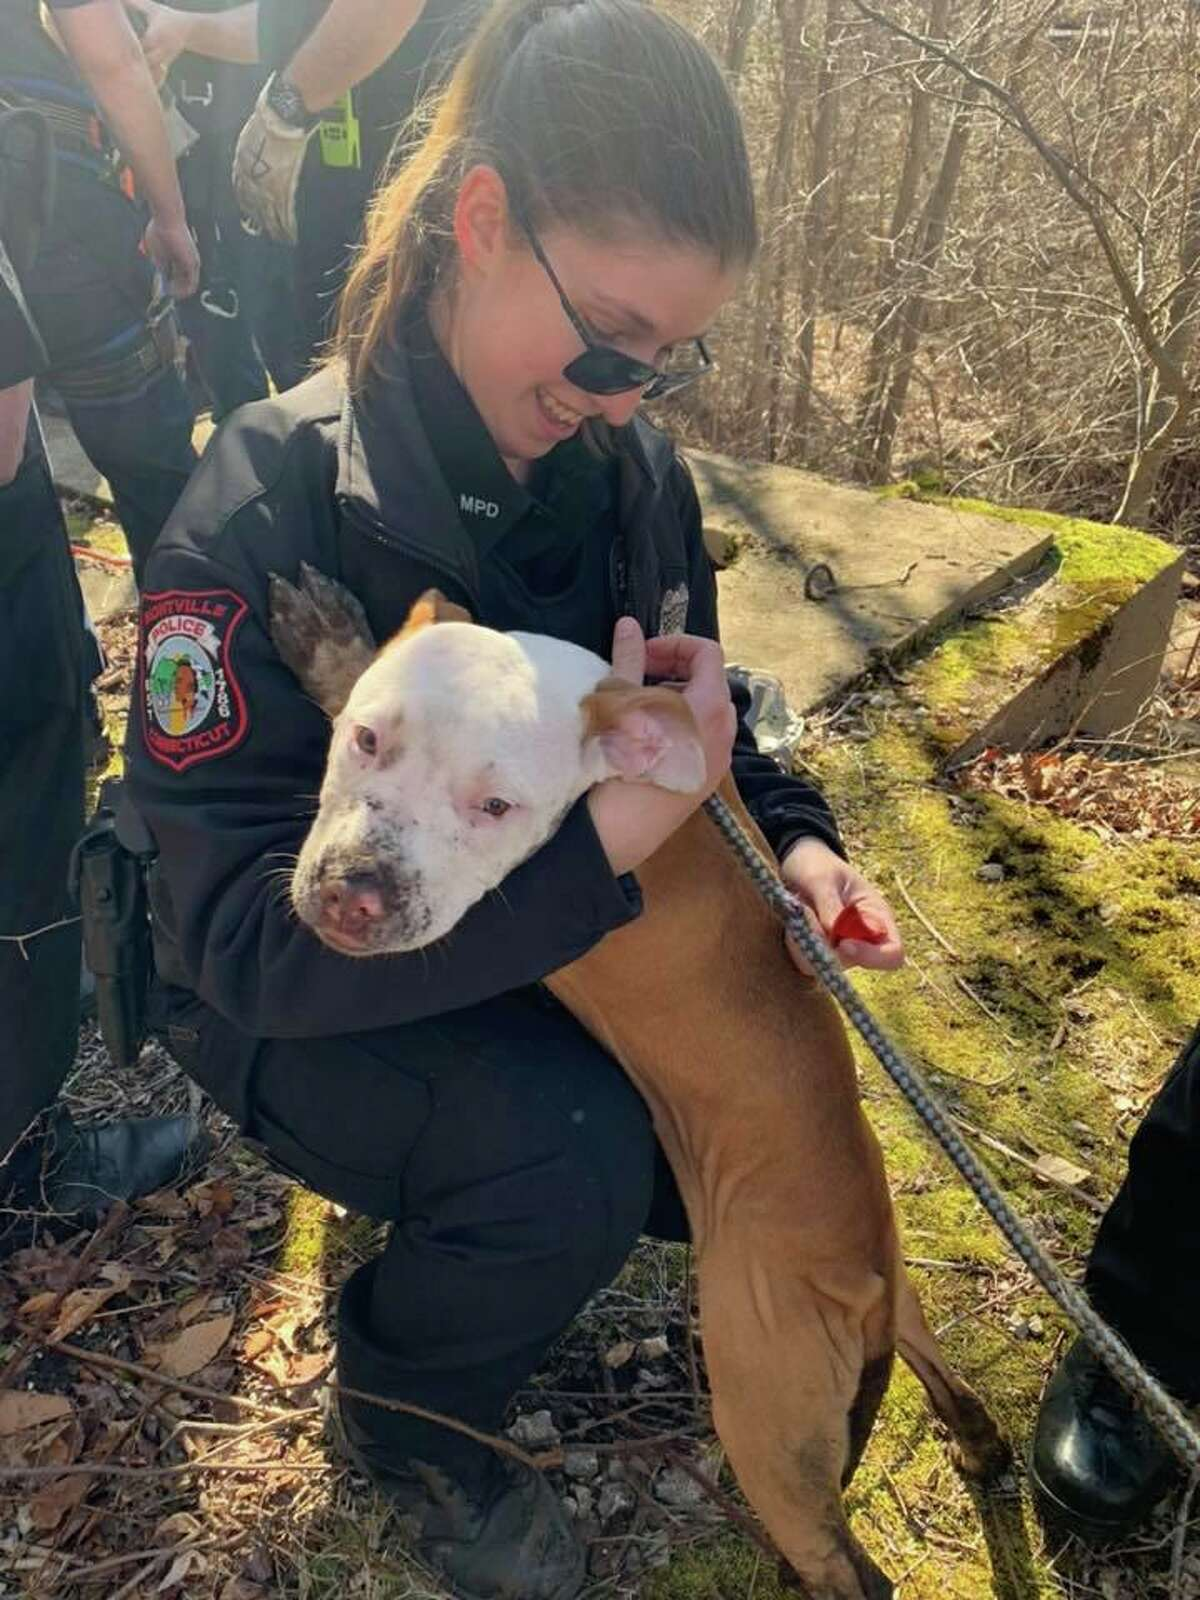 Crews rescued a puppy from a well in Montville, Conn., on Monday, Feb. 24, 2020.